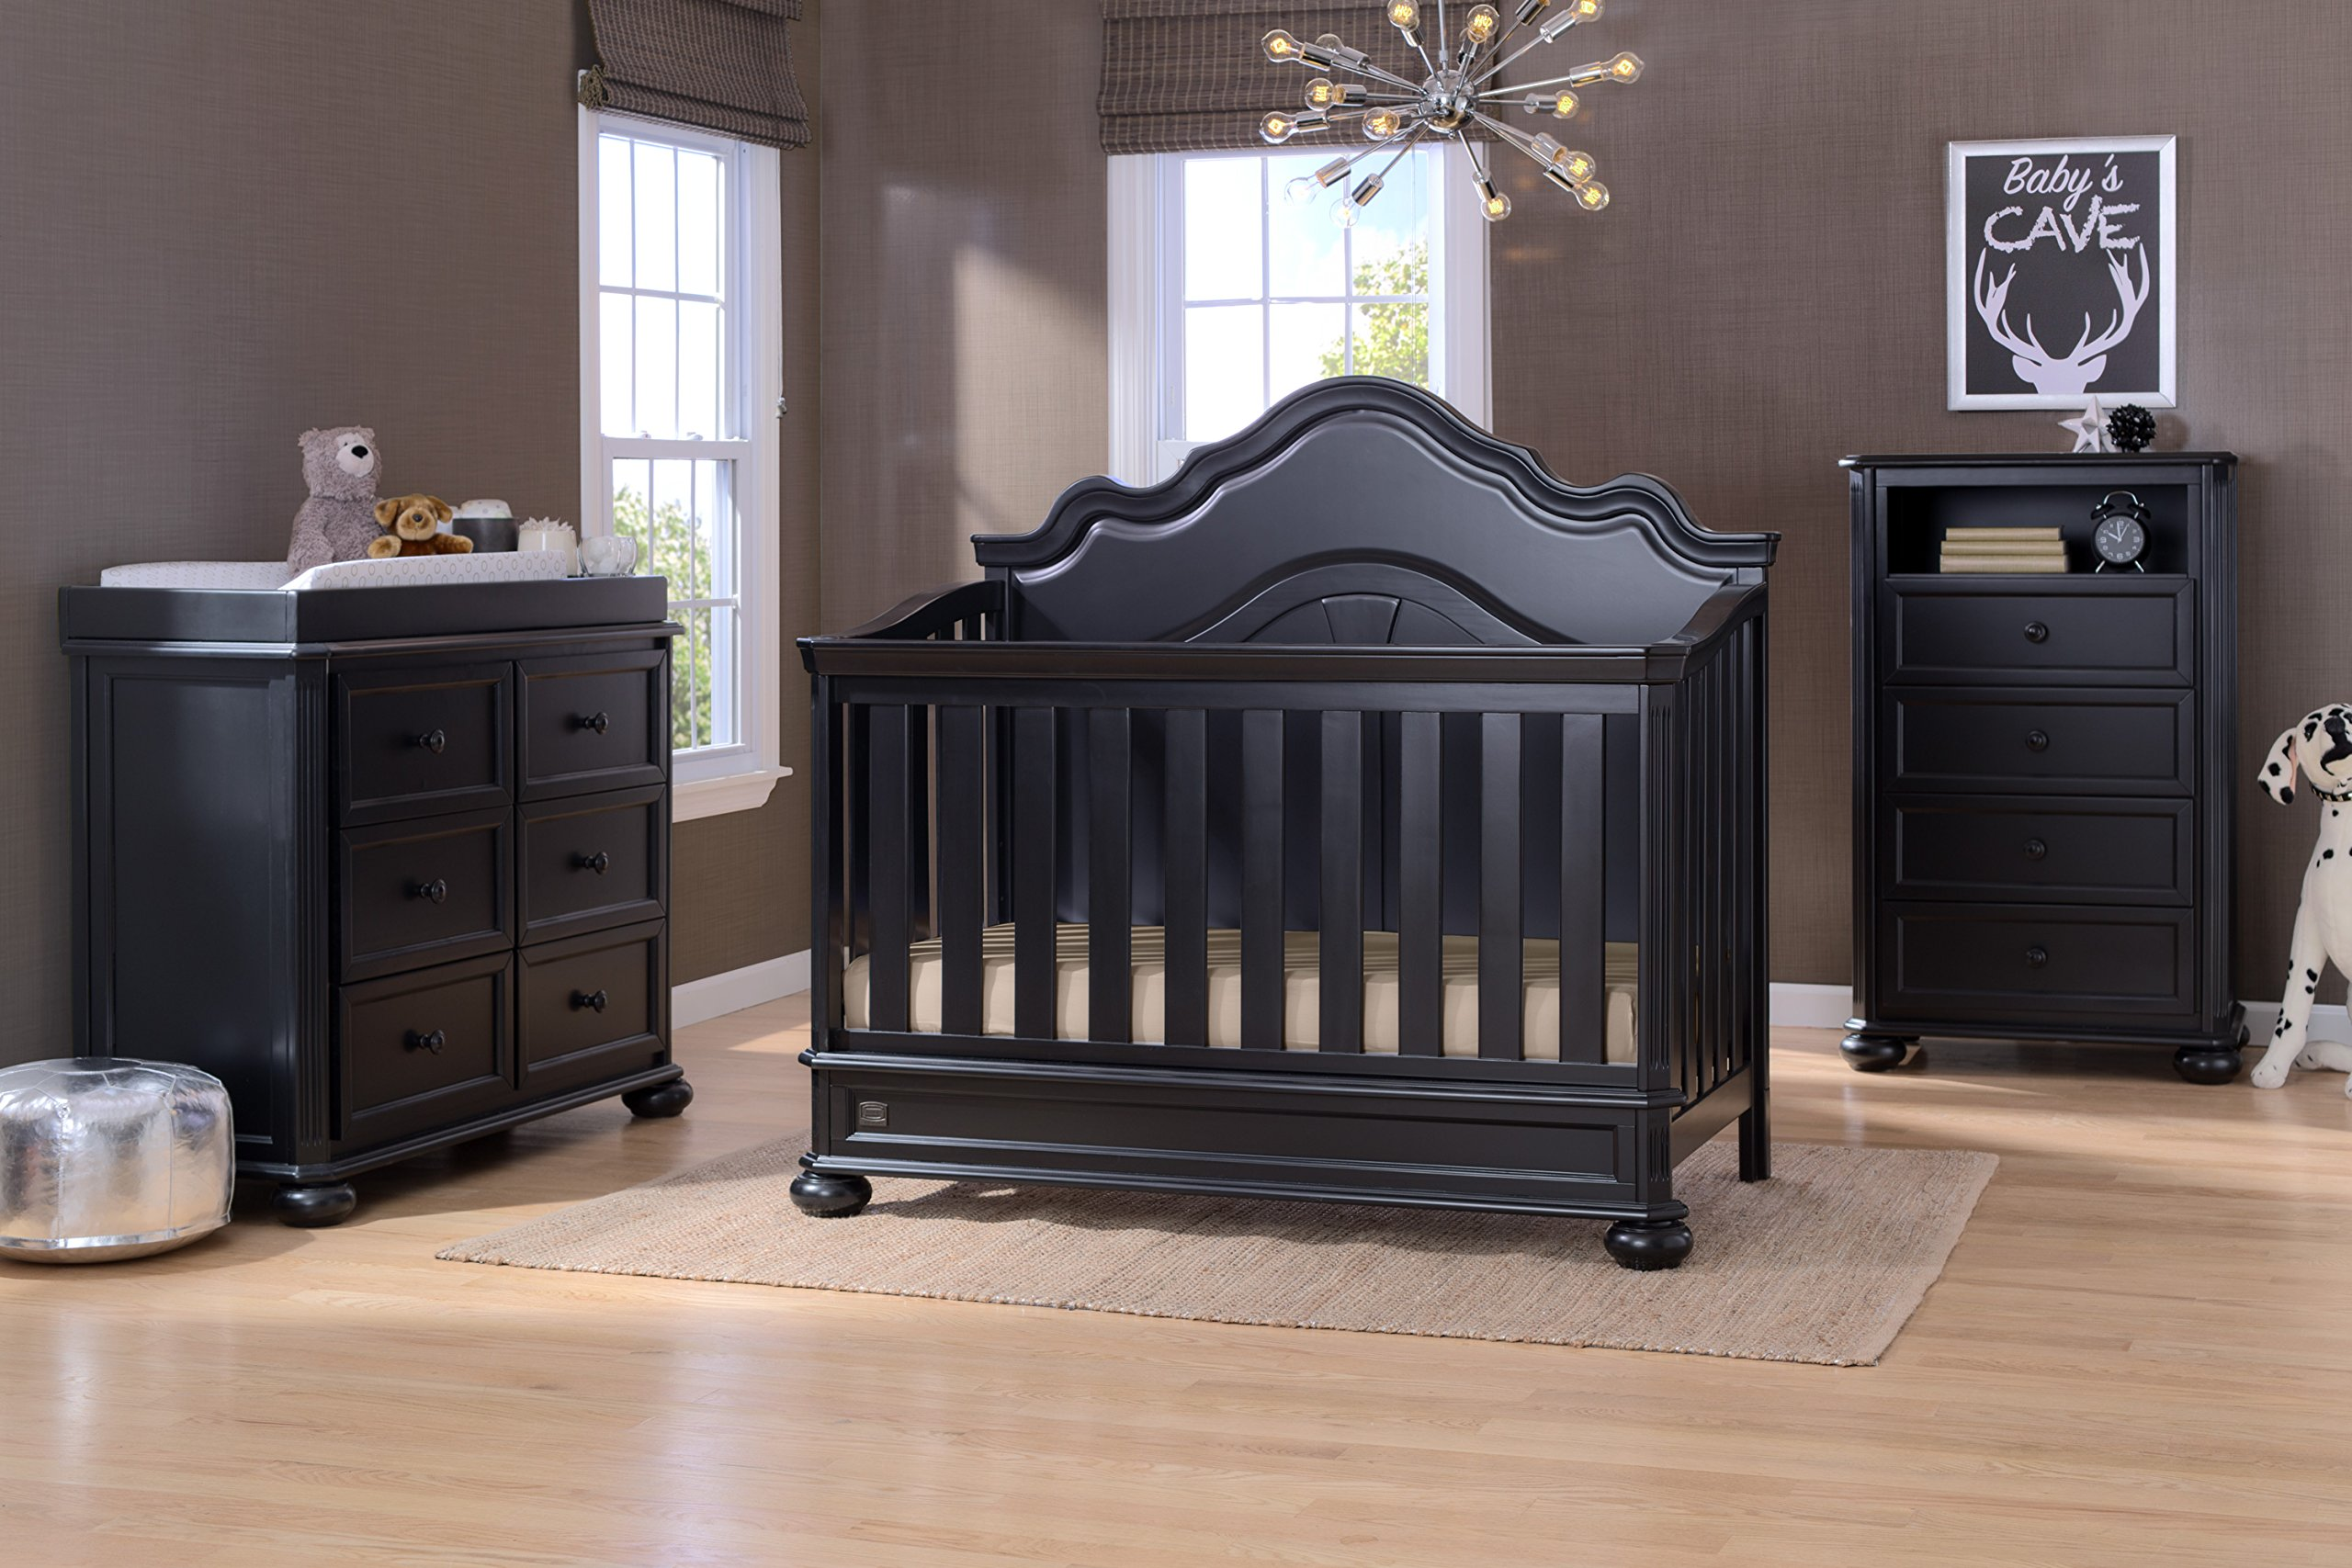 Nursery Furniture Set With Convertible Crib Dresser Chest Changing Top Toddler And Full Size Conversions 6 Piece Simmons Peyton Collection